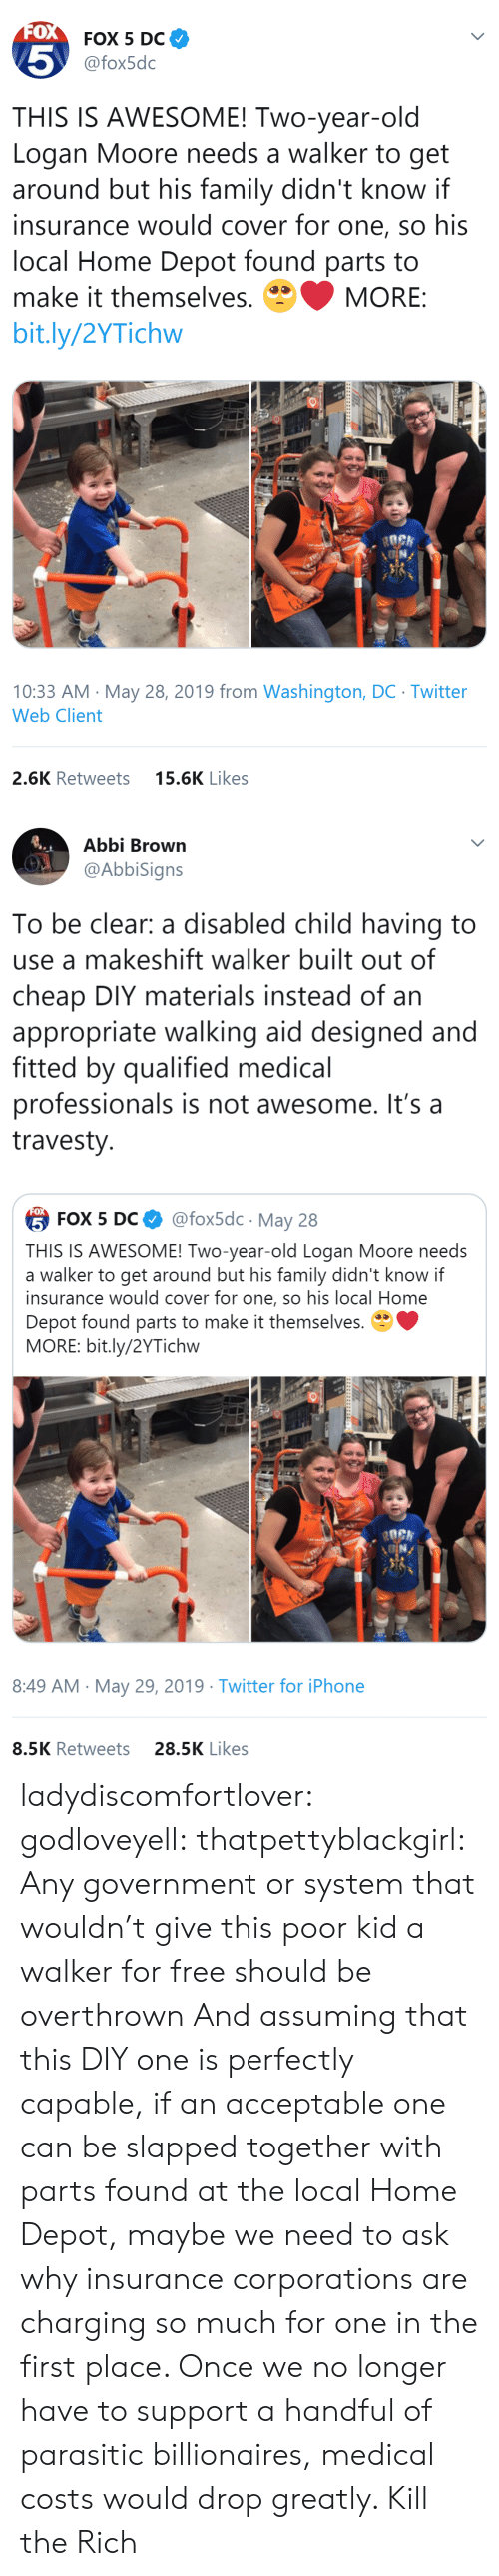 assuming: FOX  FOX 5 DC  5  @fox5dc  THIS IS AWESOME! Two-year-old  Logan Moore needs a walker to get  around but his family didn't know if  insurance would cover for one, so his  local Home Depot found parts to  make it themselves.  MORE:  bit.ly/2YTichw  10:33 AM May 28, 2019 from Washington, DC Twitter  Web Client  15.6K Likes  2.6K Retweets   Abbi Brown  @AbbiSigns  To be clear: a disabled child having to  use a makeshift walker built out of  cheap DIY materials instead of an  appropriate walking aid designed and  fitted by qualified medical  professionals is not awesome. It's a  travesty  FOX  @fox5dc May 28  5 FOX 5 DС  THIS IS AWESOME! Two-year-old Logan Moore needs  a walker to get around but his family didn't know if  insurance would cover for one, so his local Home  Depot found parts to make it themselves.  MORE: bit.ly/2YTichw  8:49 AM May 29, 2019 Twitter for iPhone  28.5K Likes  8.5K Retweets ladydiscomfortlover: godloveyell:  thatpettyblackgirl:  Any government or system that wouldn't give this poor kid a walker for free should be overthrown   And assuming that this DIY one is perfectly capable, if an acceptable one can be slapped together with parts found at the local Home Depot, maybe we need to ask why insurance corporations are charging so much for one in the first place.  Once we no longer have to support a handful of parasitic billionaires, medical costs would drop greatly.    Kill the Rich